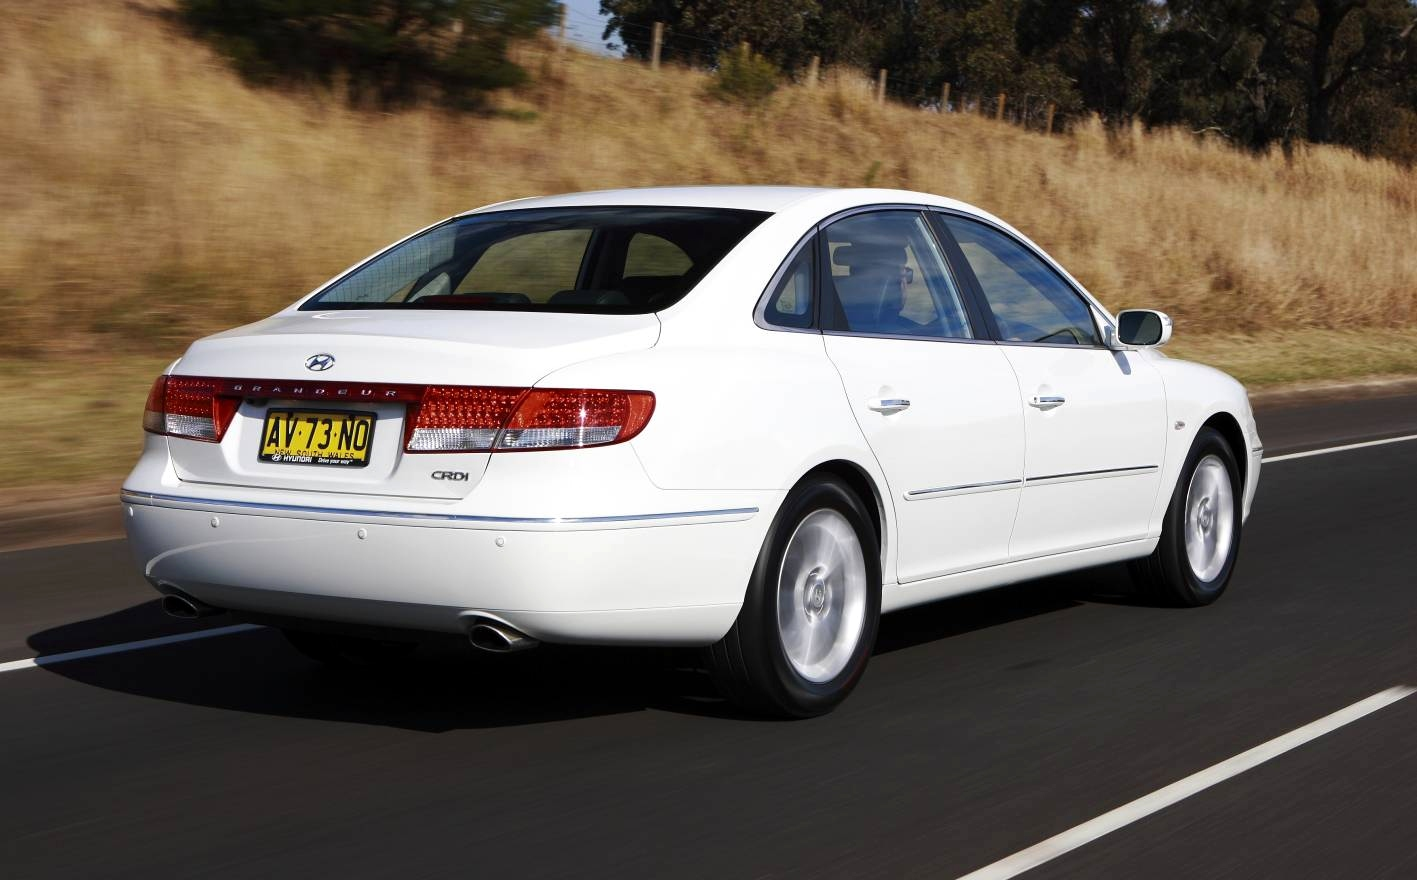 Hyundai Grandeur photo 16